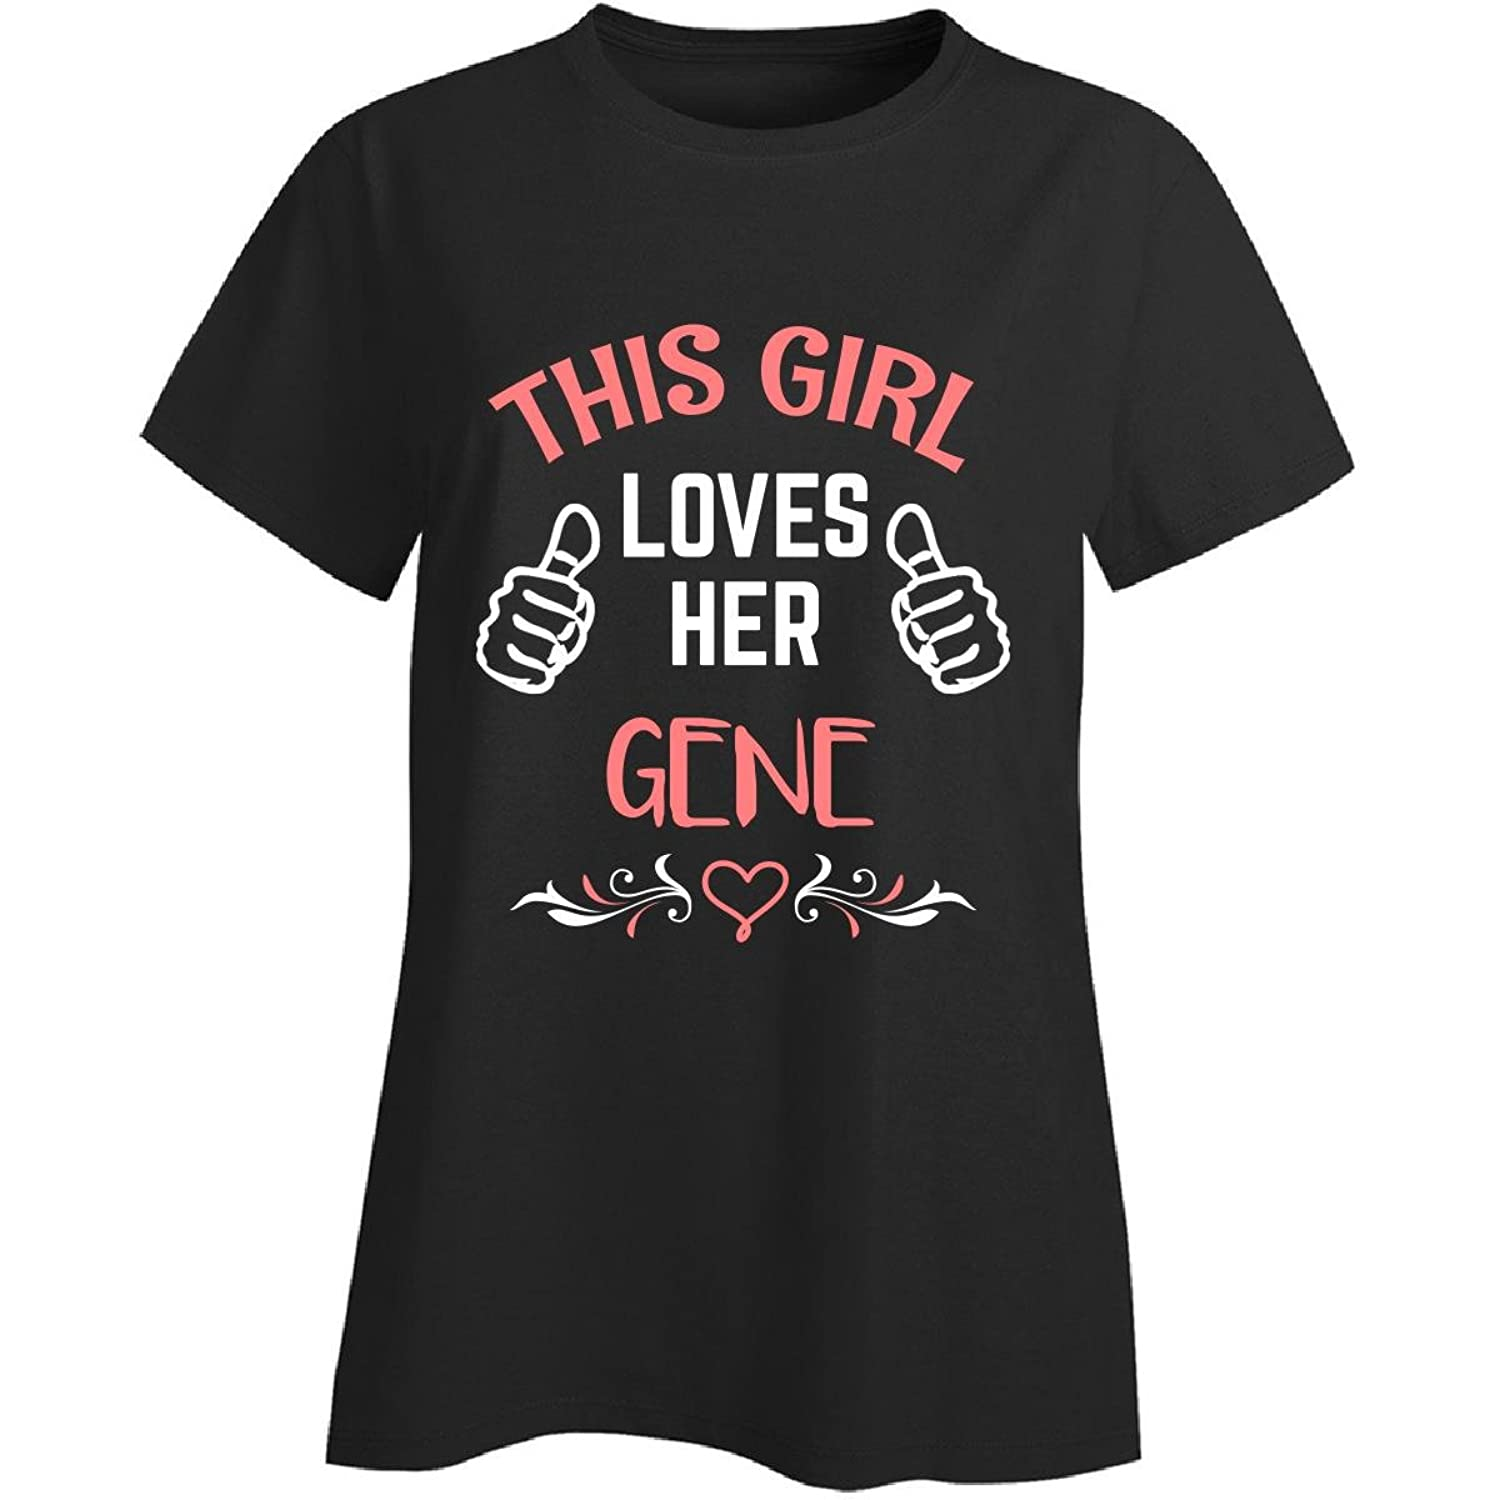 This Girl Loves Her Gene Valentines Day Gift - Ladies T-shirt